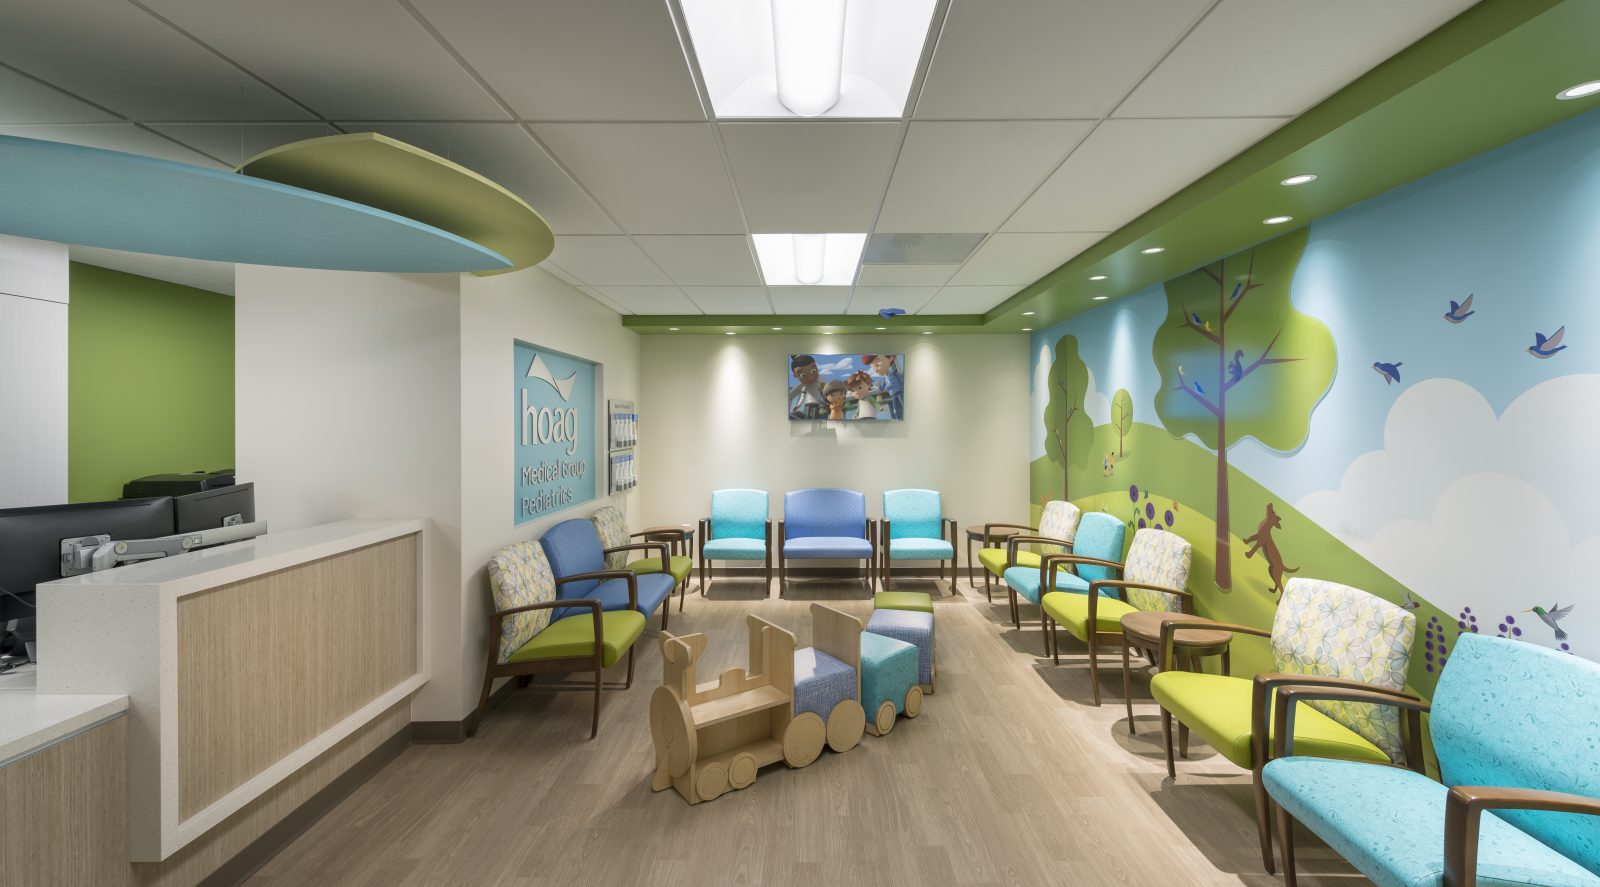 Hoag Pediatrics Irvine – Sand Canyon